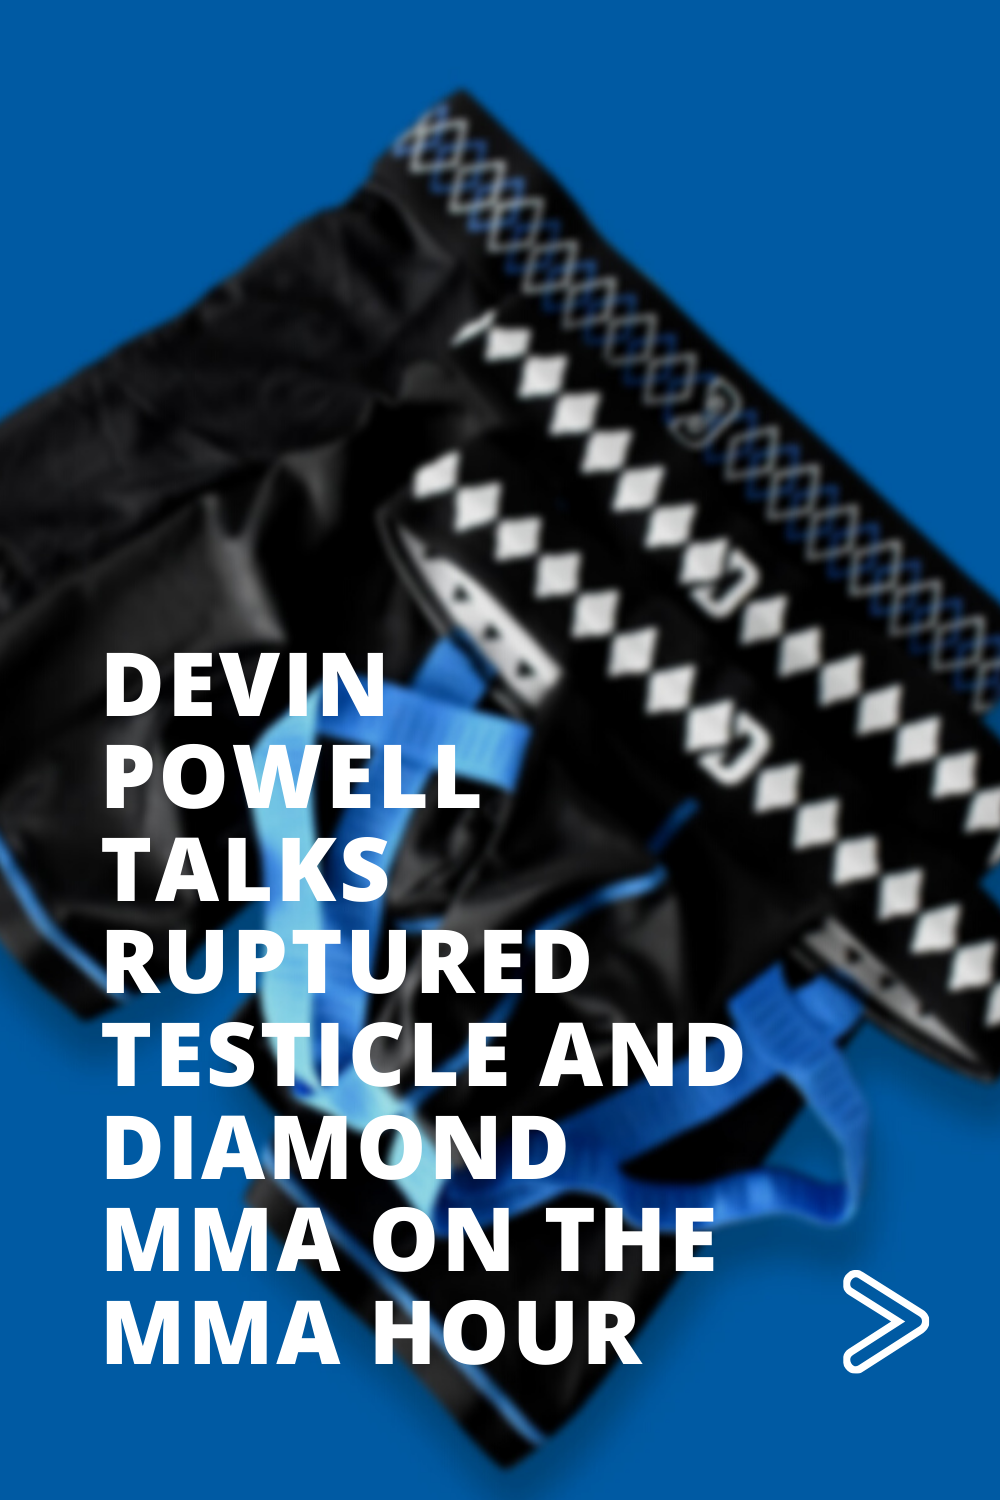 Devin Powell Talks Ruptured Testicle and Diamond MMA on The MMA Hour